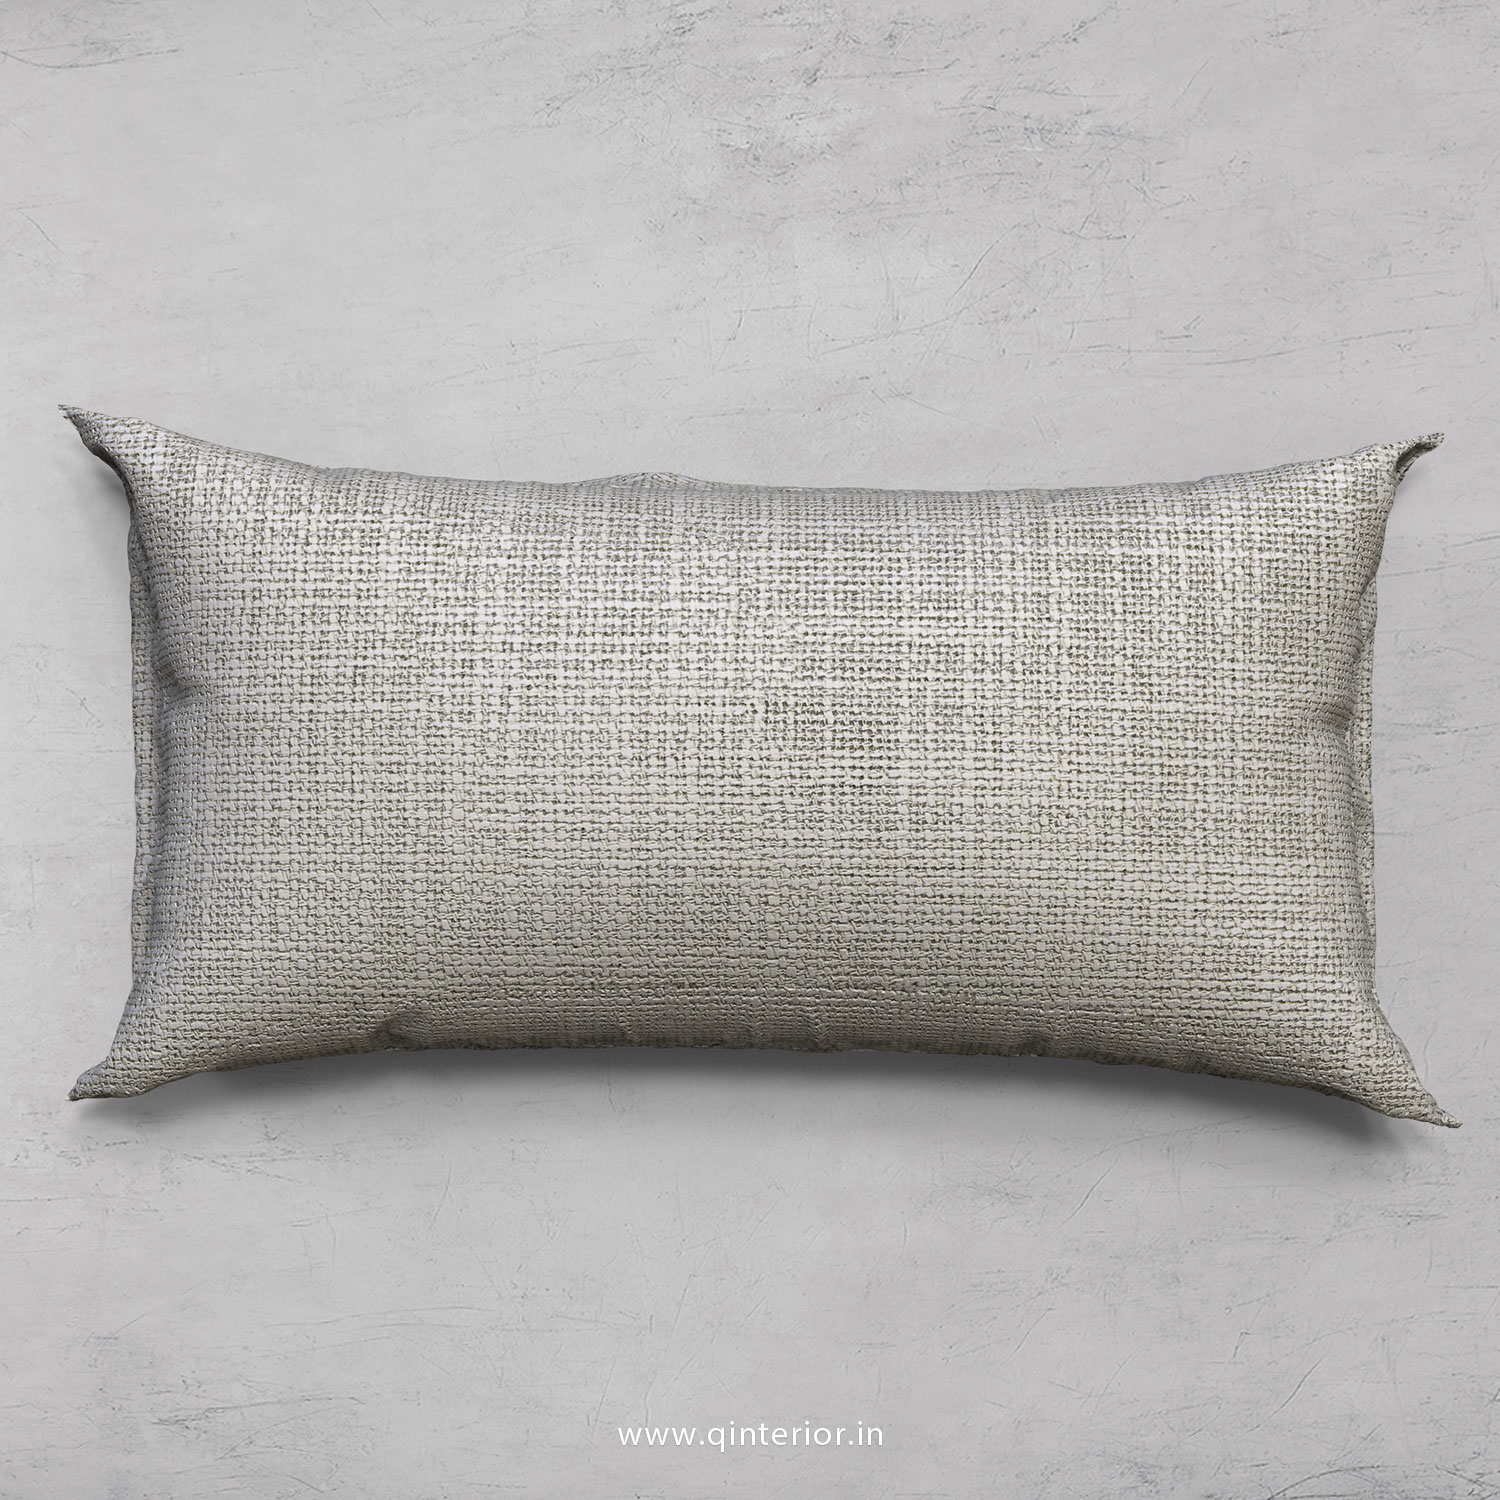 Cushion With Cushion Cover in Marvello- CUS002 MV05